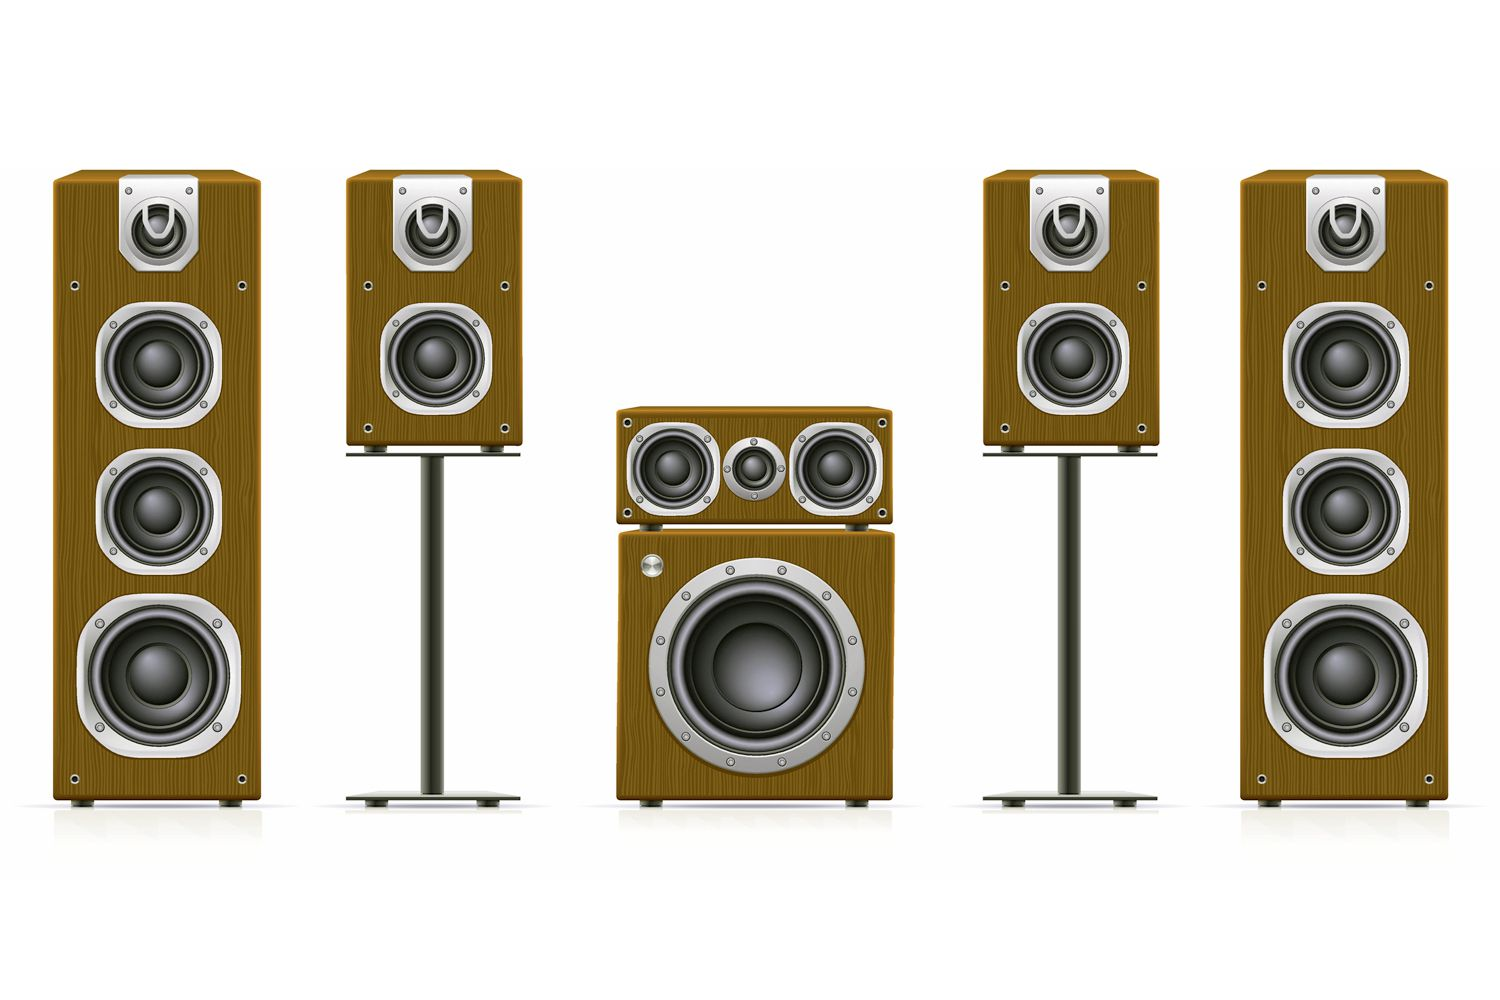 hight resolution of home theater speaker system example